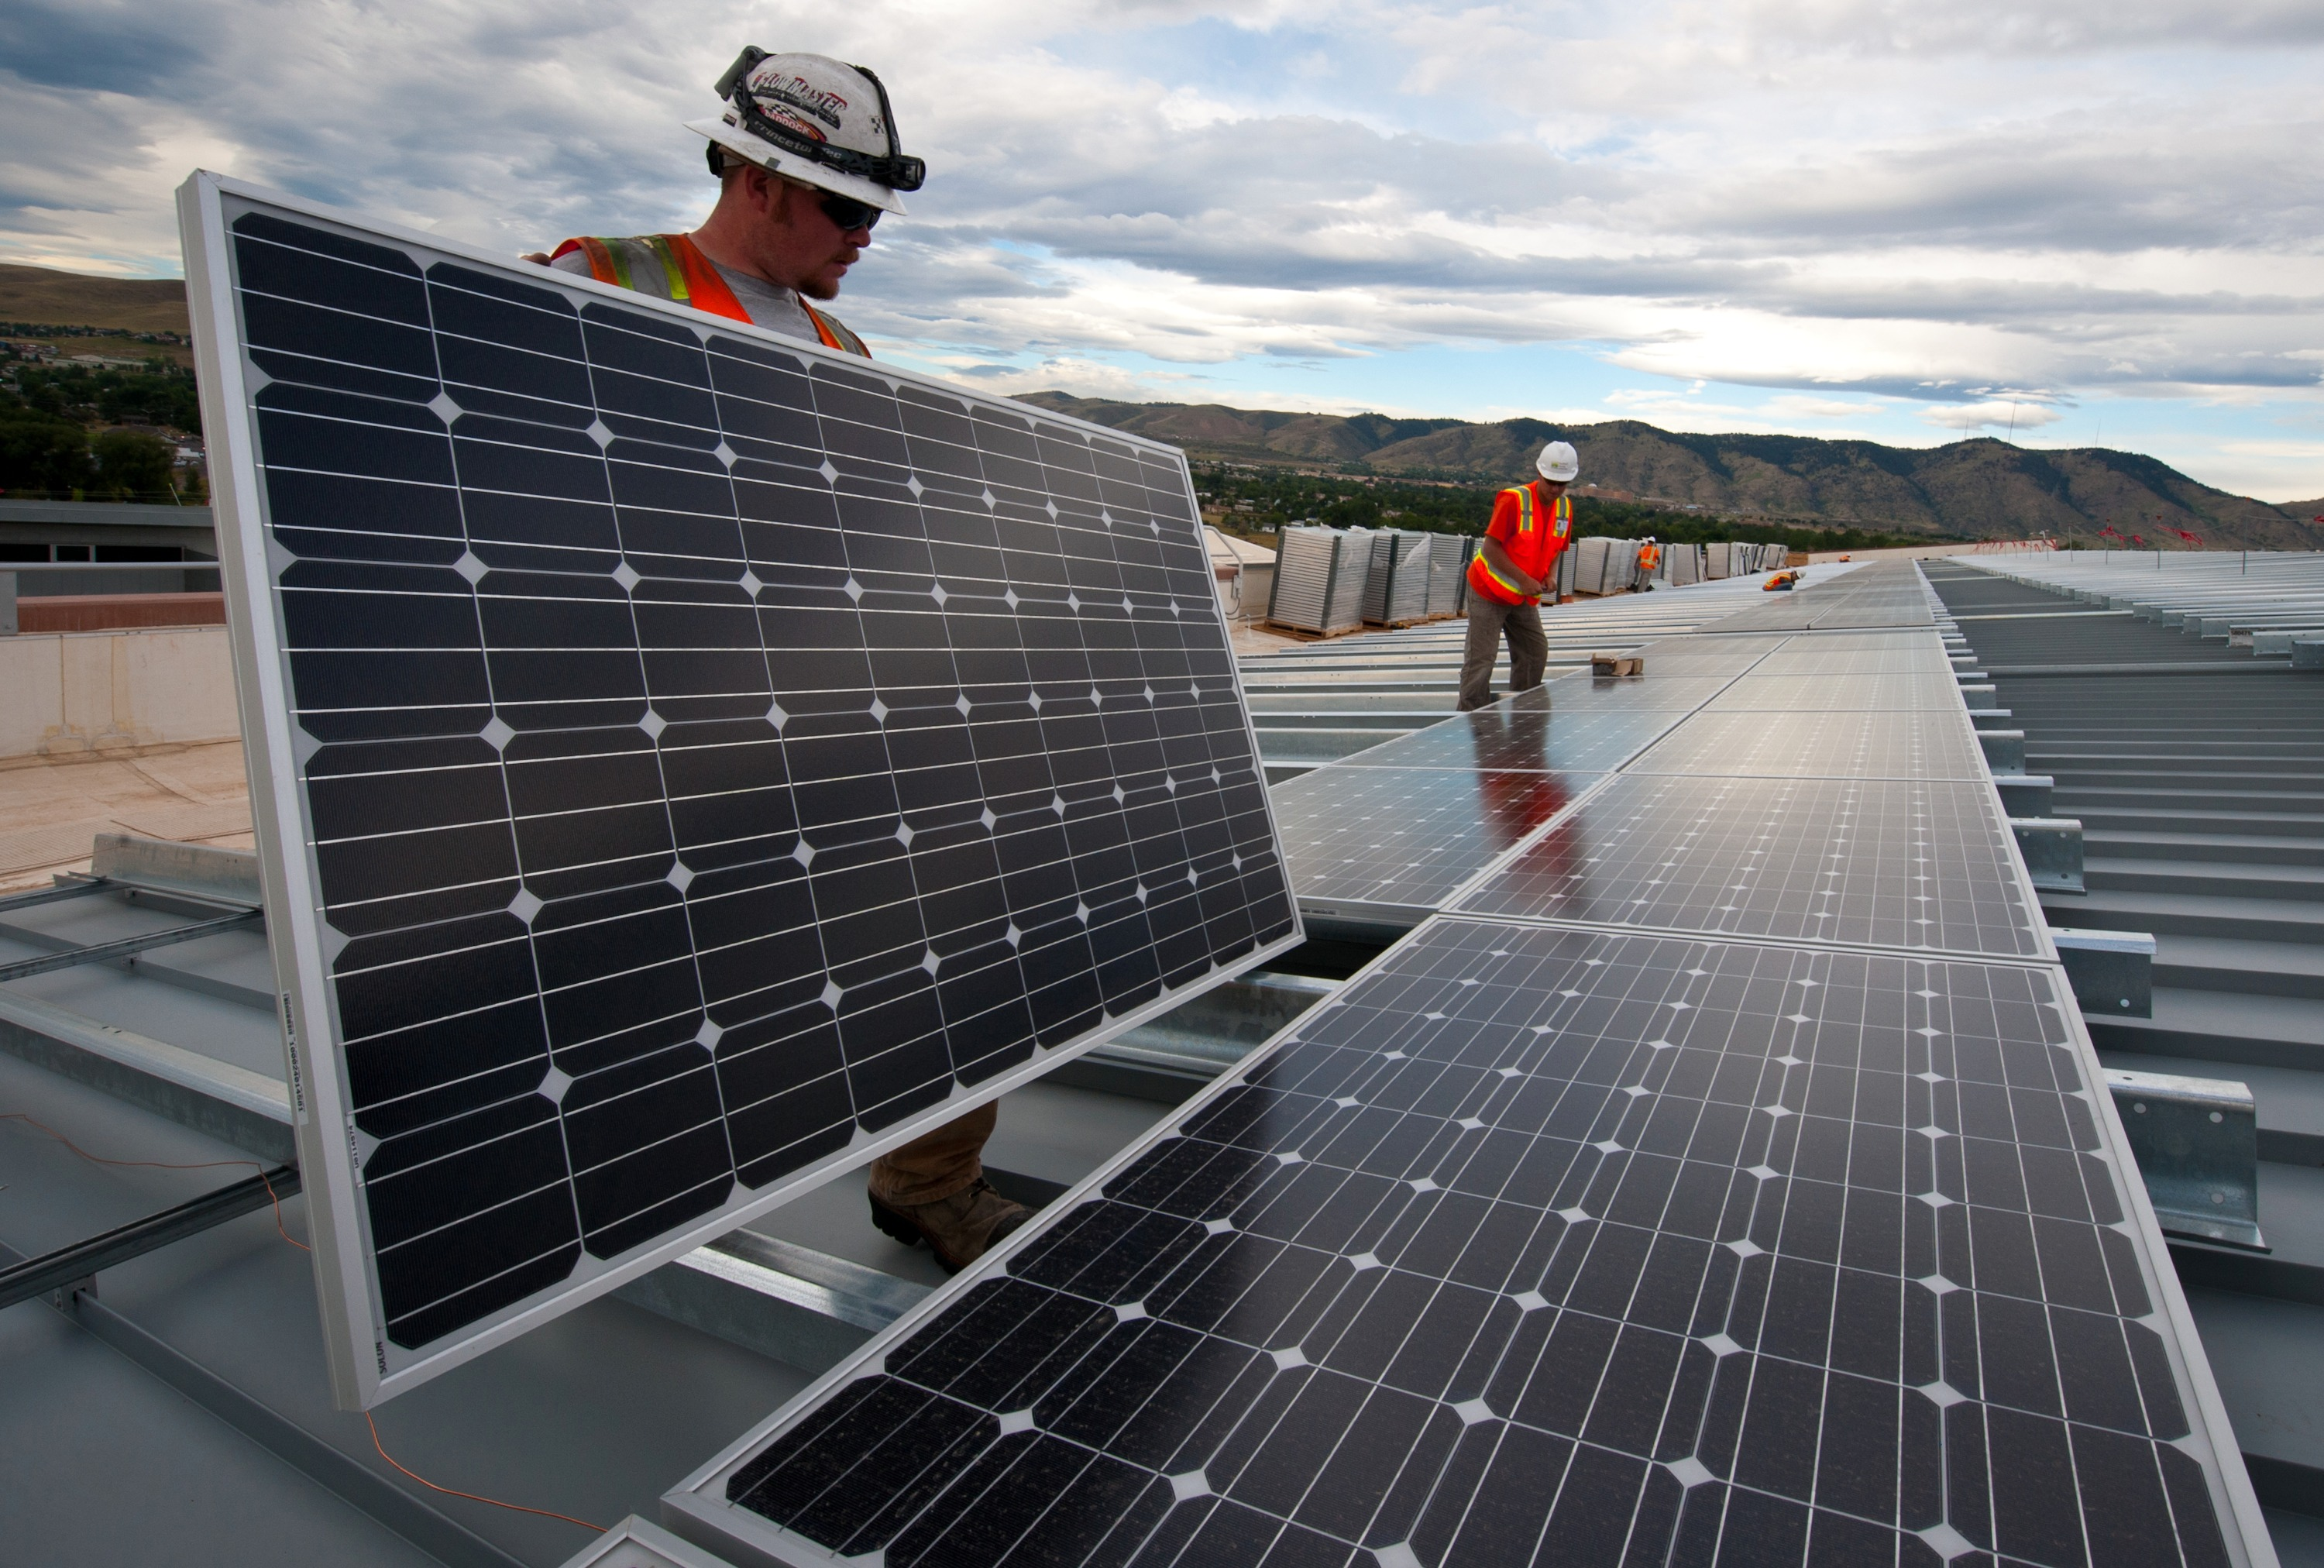 File:Installing Solar Panels (7336033672).jpg - Wikimedia Commons